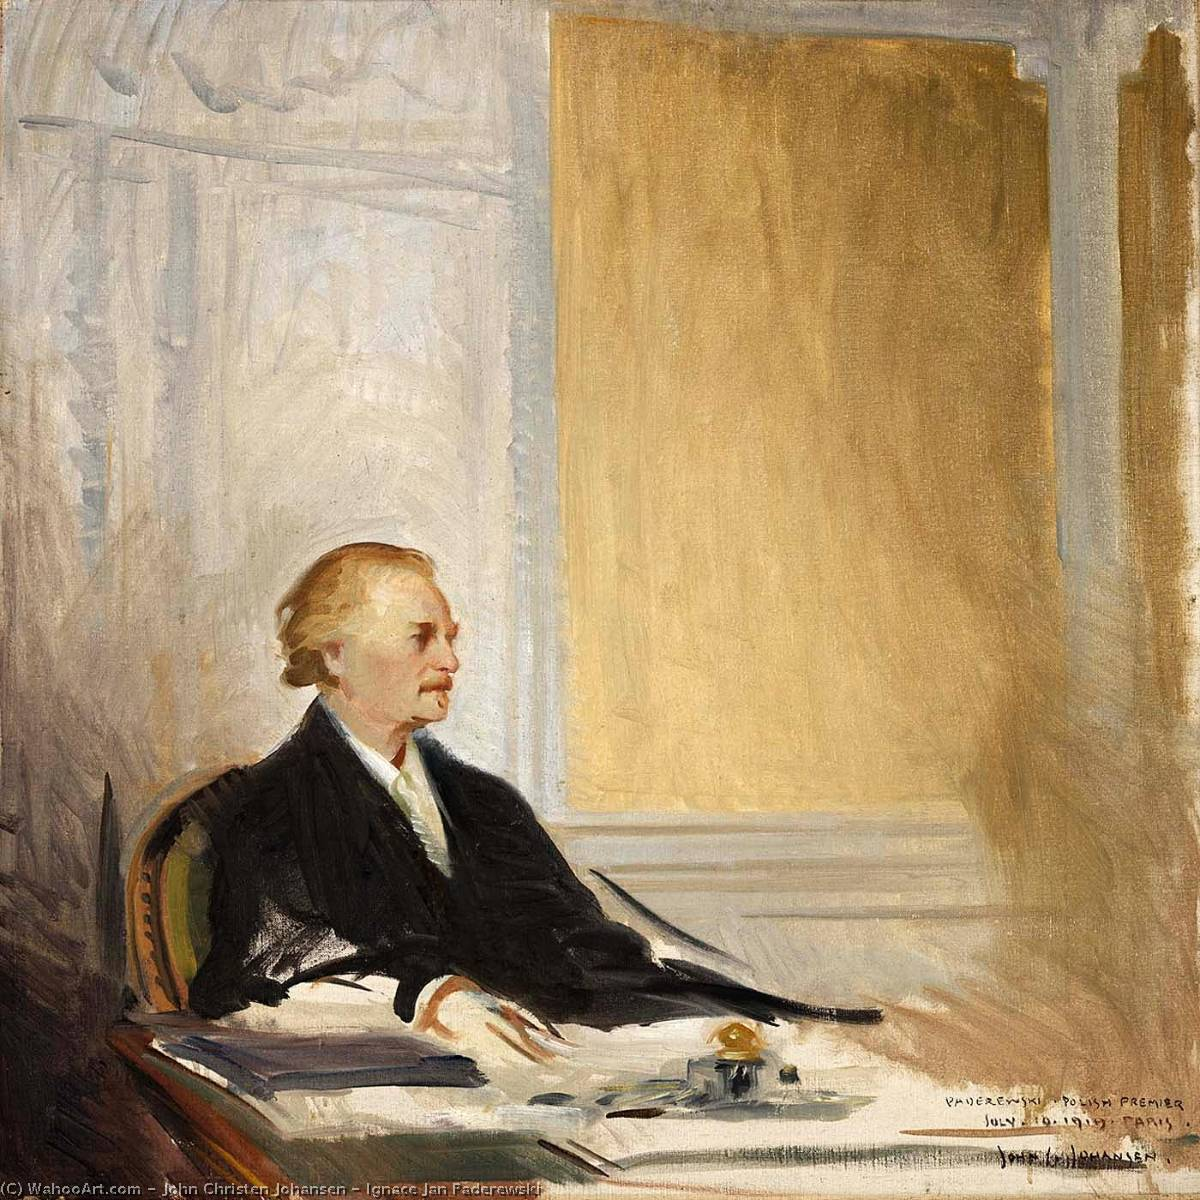 Ignace Jan Paderewski, Oil On Canvas by John Christen Johansen